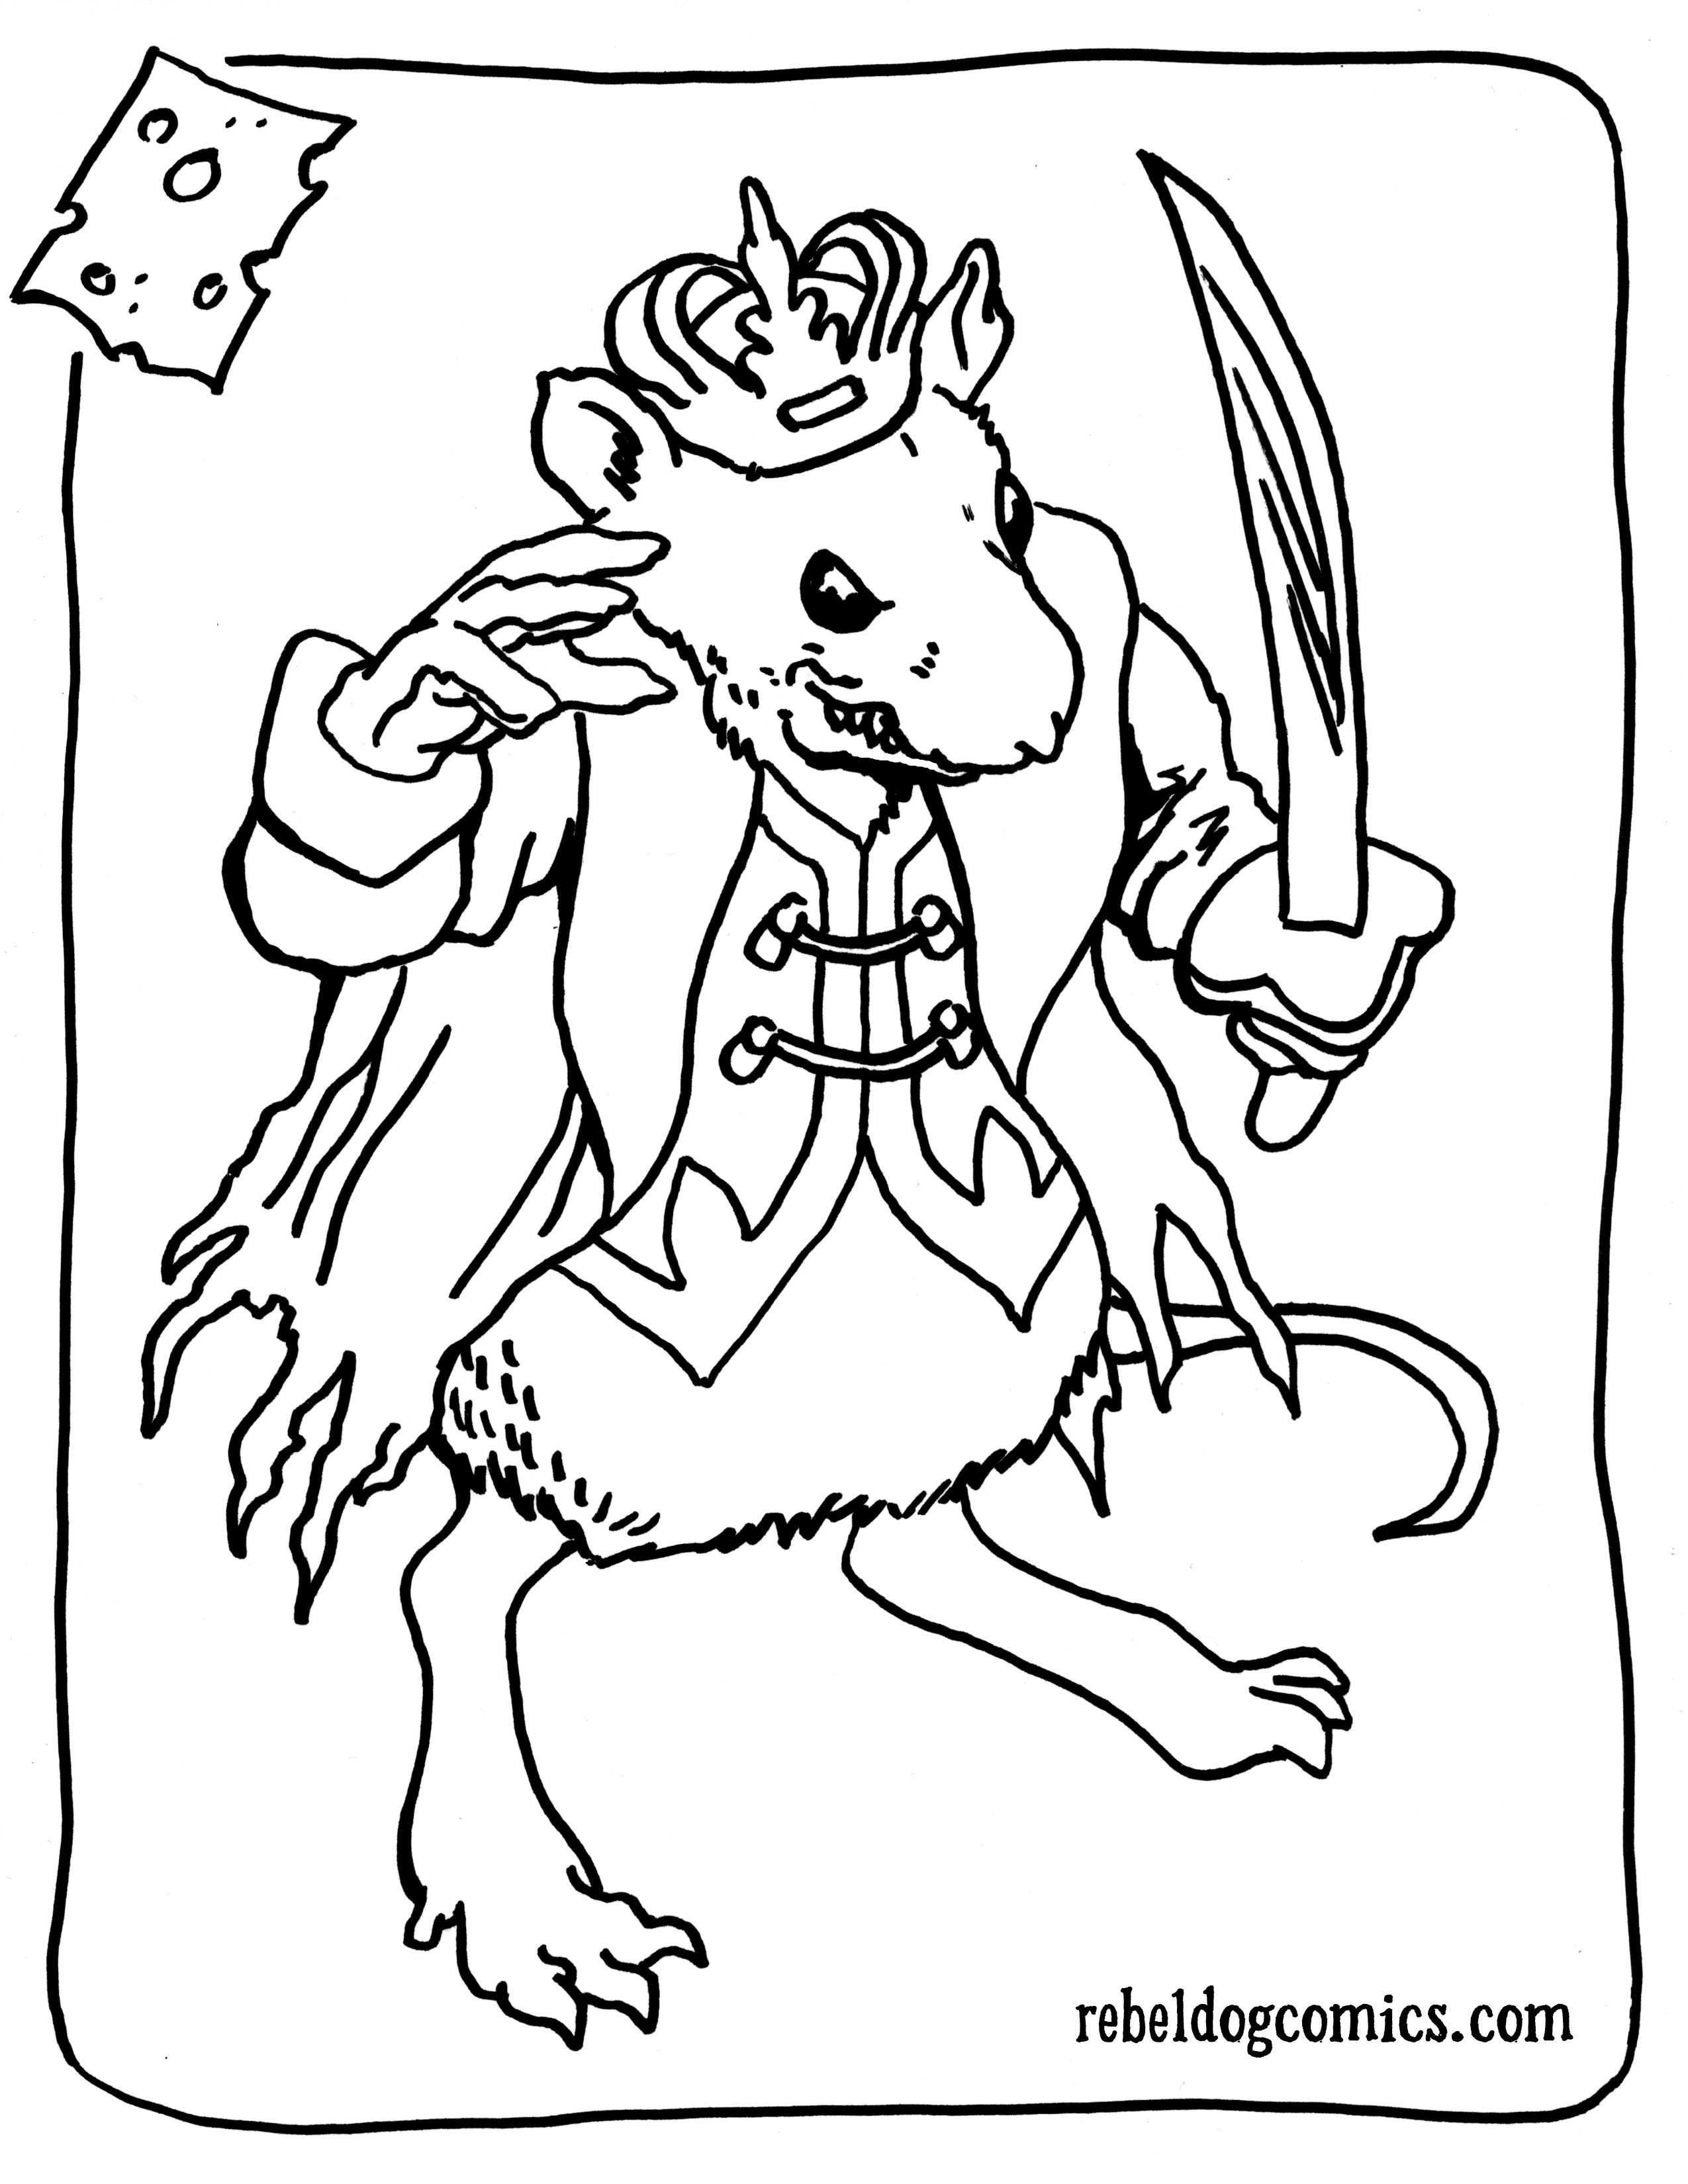 Mouse King Nutcracker Soldier Coloring Page Ballet Pinterest